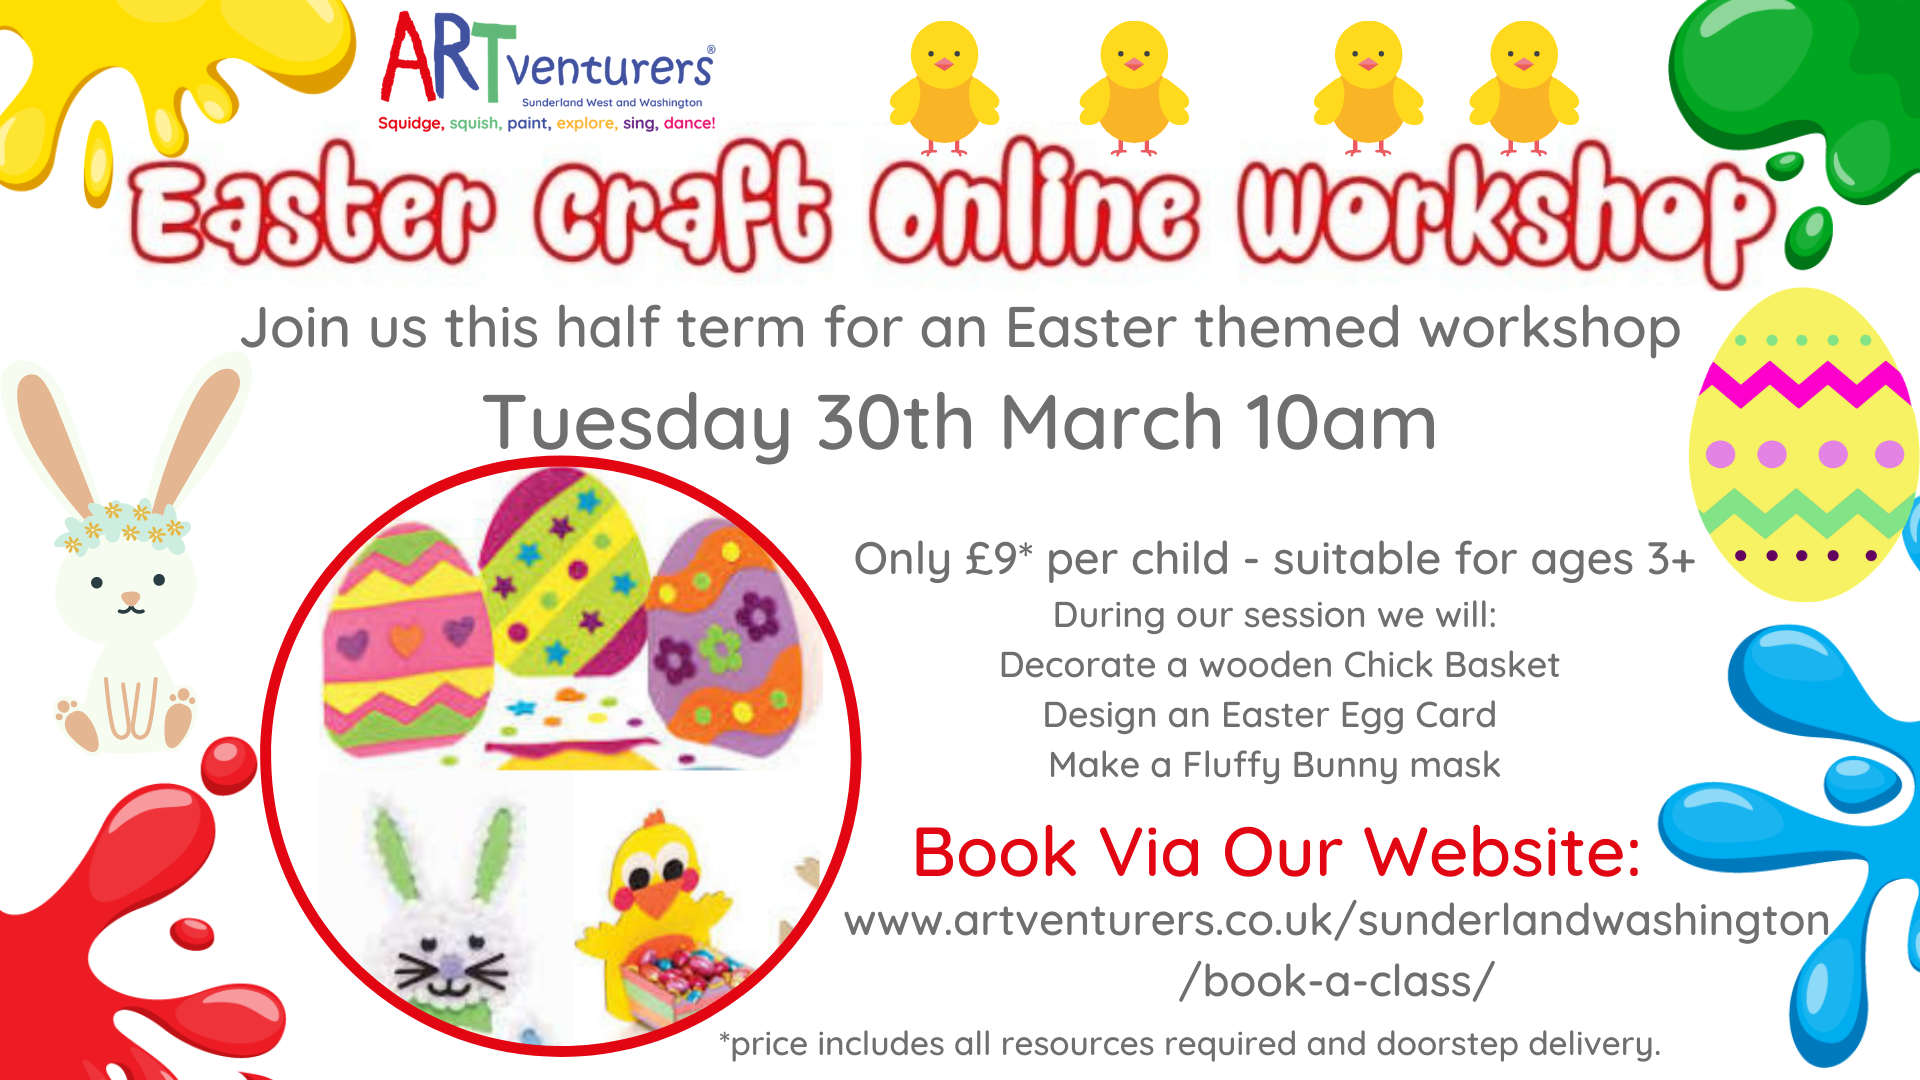 As many of our usual Easter activities are unable to go ahead this year, we decided to create some new ones!! So join us for an Easter Online Craft Workshop!! Join me for an interactive Zoom session - we will create memories and cute Easter crafts together! Chat with friends following our warm up song we decorate a wooden chick basket, design an Easter egg card and make a fluffy bunny mask Each Easter Online Craft Workshop pack will contain all resources required including paint, brush and glue. Our Easter themed workshop is suitable for ages 3+ Doorstep Delivery the day before (Monday 29th March) - Zoom link will be issued the night before. Please note for all items/activities within our workshop, young children will require adult supervision.